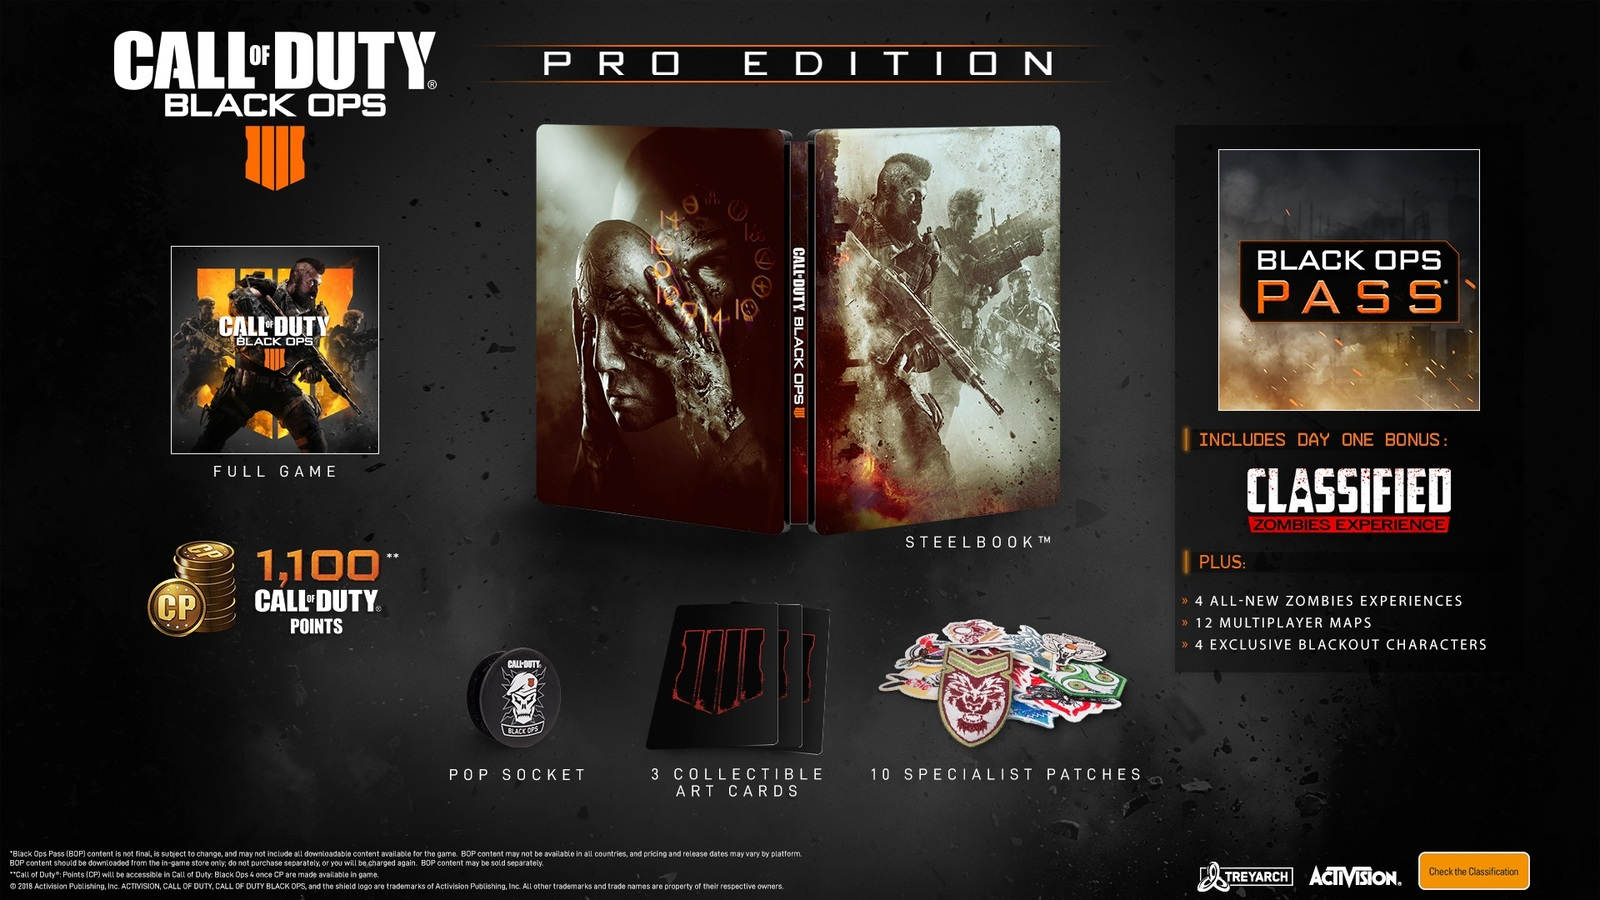 Call of Duty: Black Ops IIII Pro Edition for Xbox One image